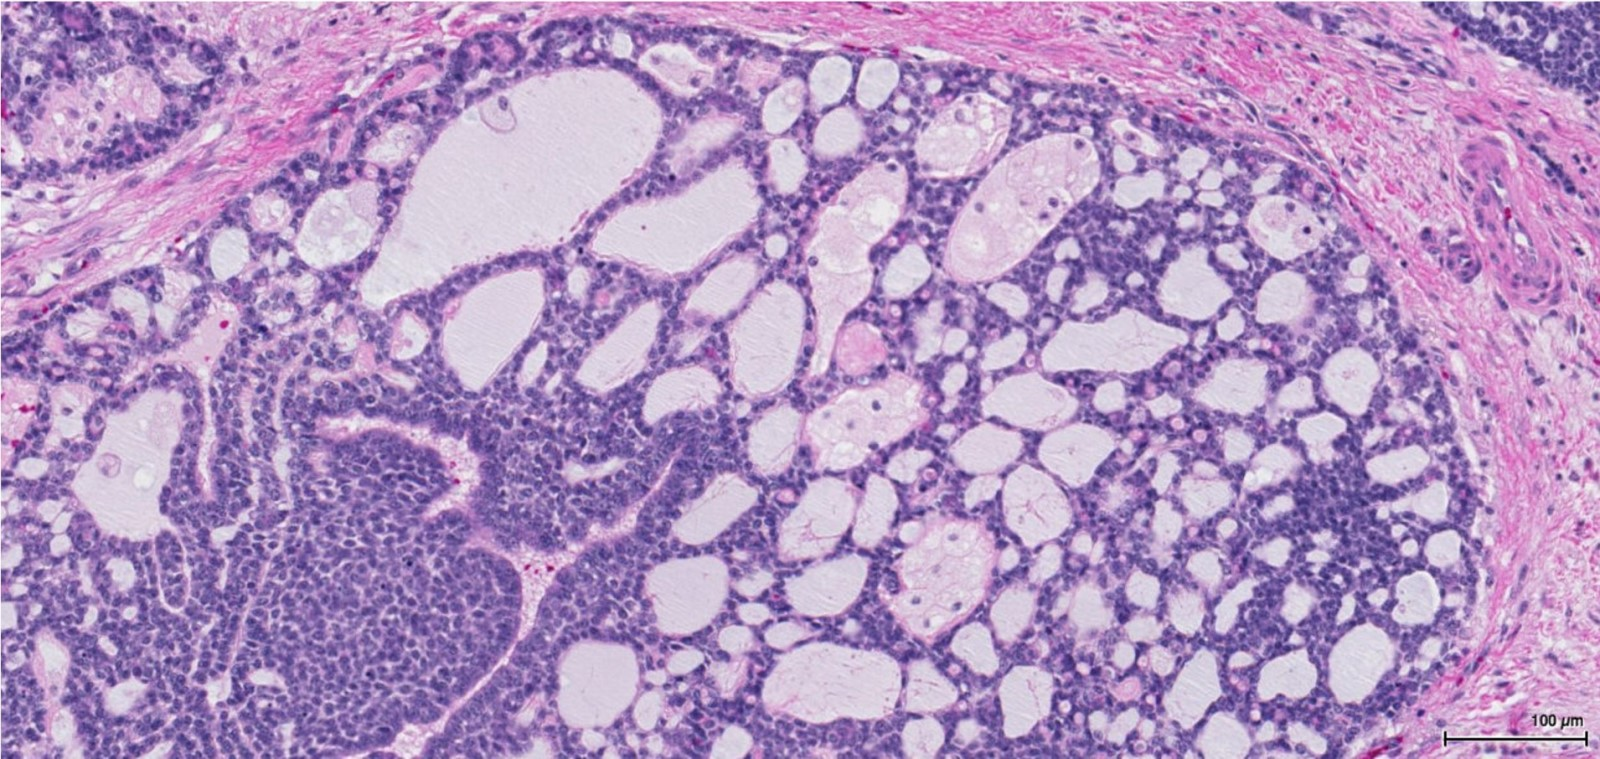 Glandular pattern